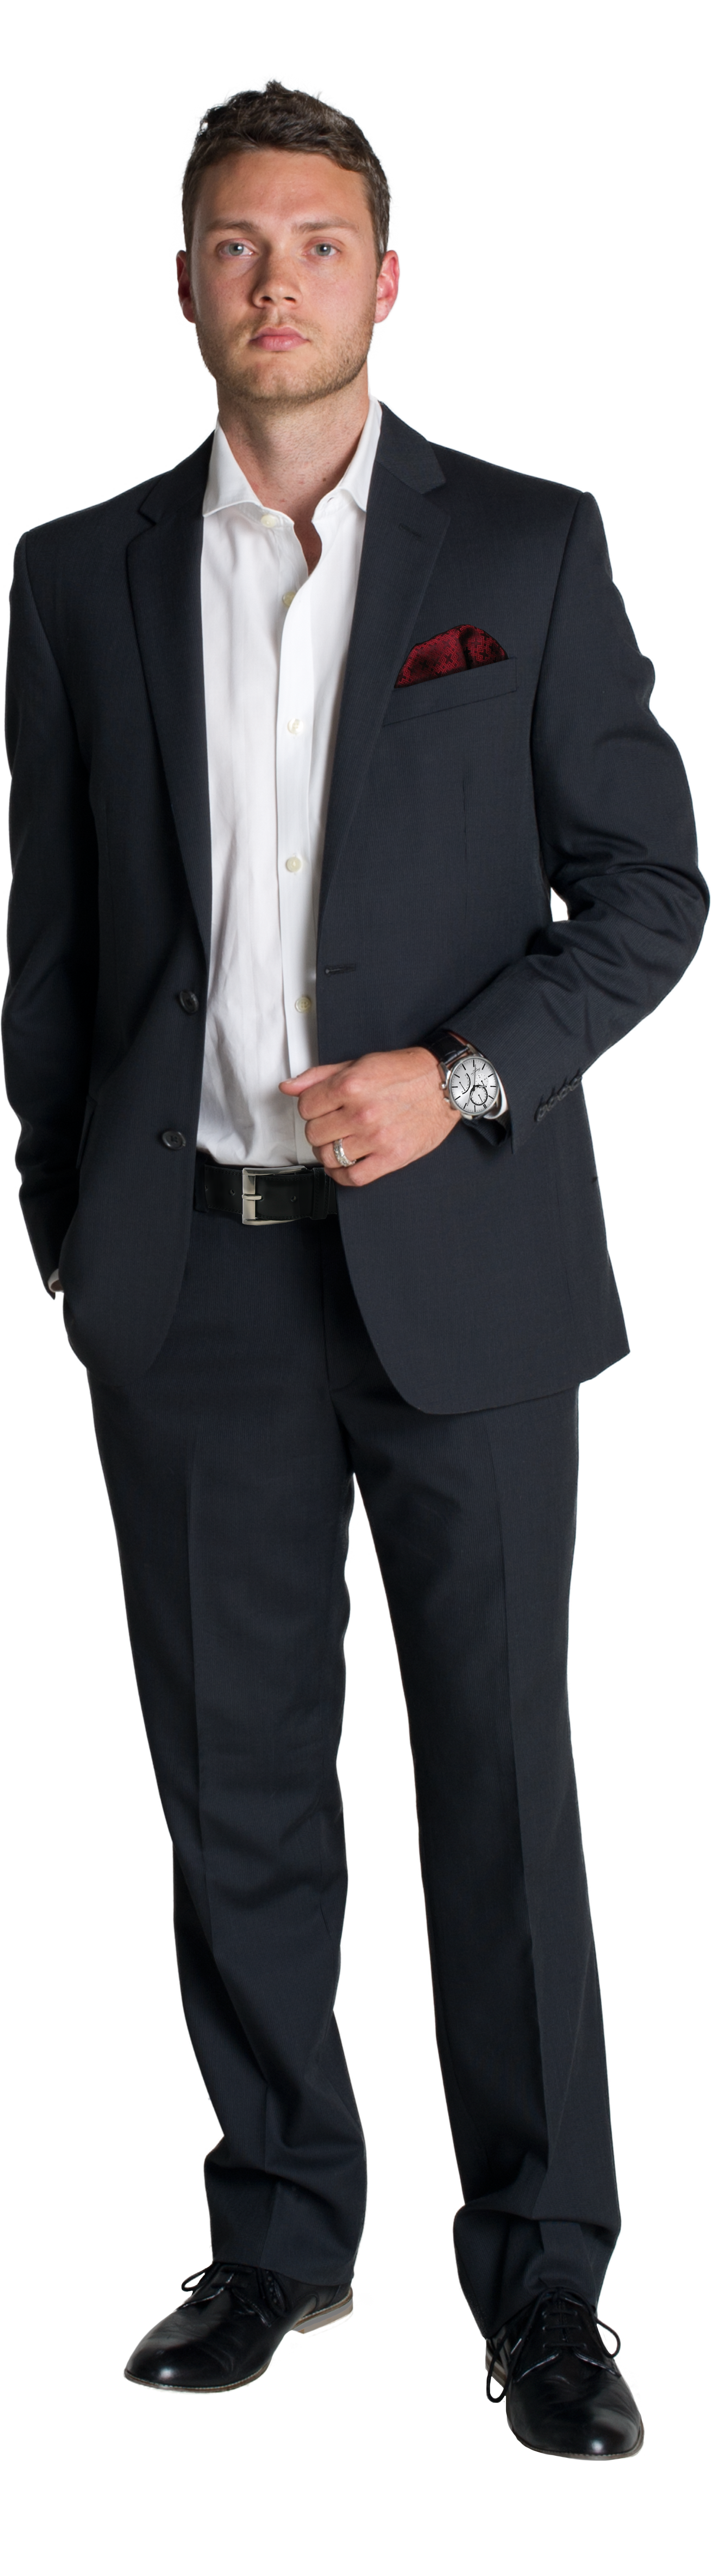 Guy In A Suit PNG - 159703